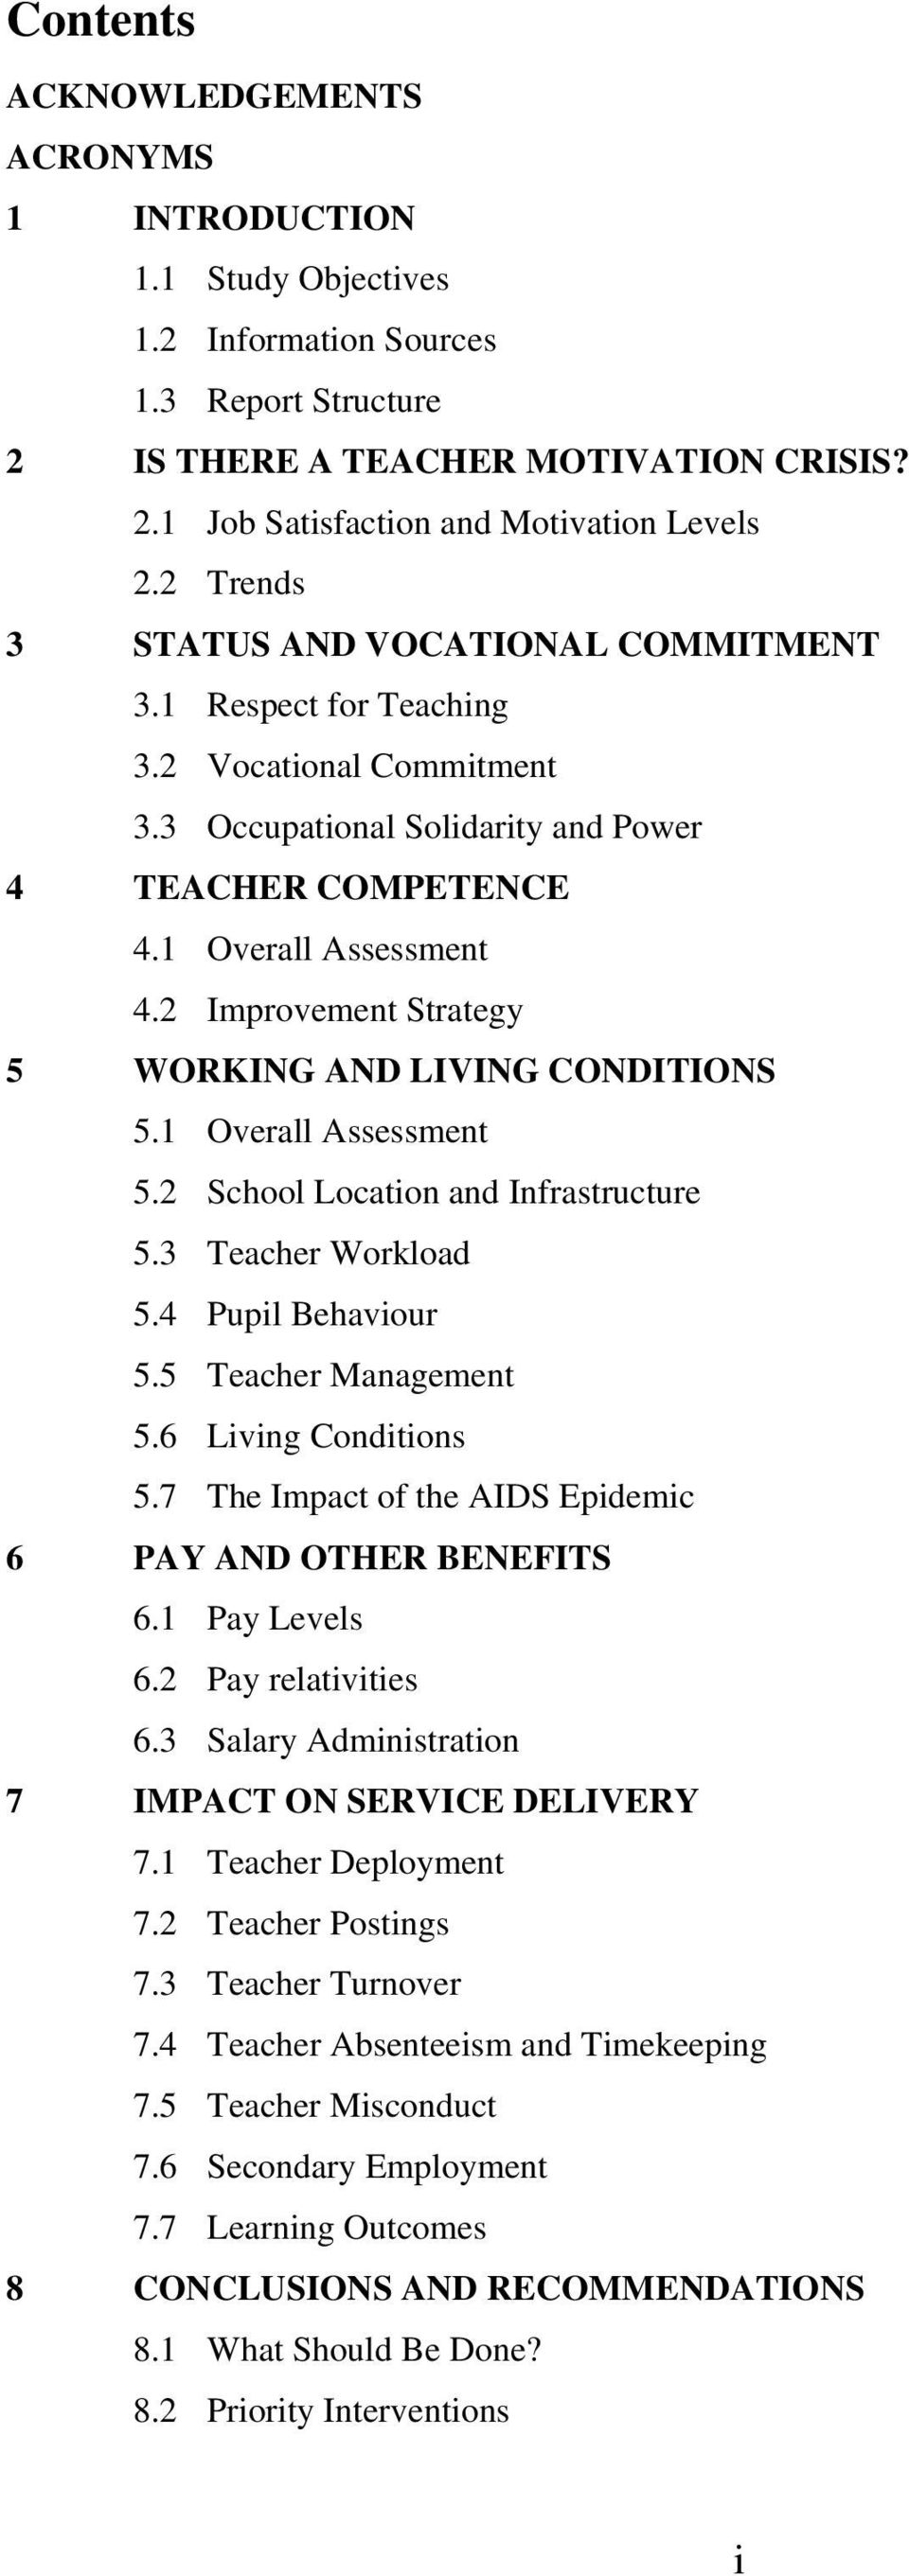 2 Improvement Strategy 5 WORKING AND LIVING CONDITIONS 5.1 Overall Assessment 5.2 School Location and Infrastructure 5.3 Teacher Workload 5.4 Pupil Behaviour 5.5 Teacher Management 5.